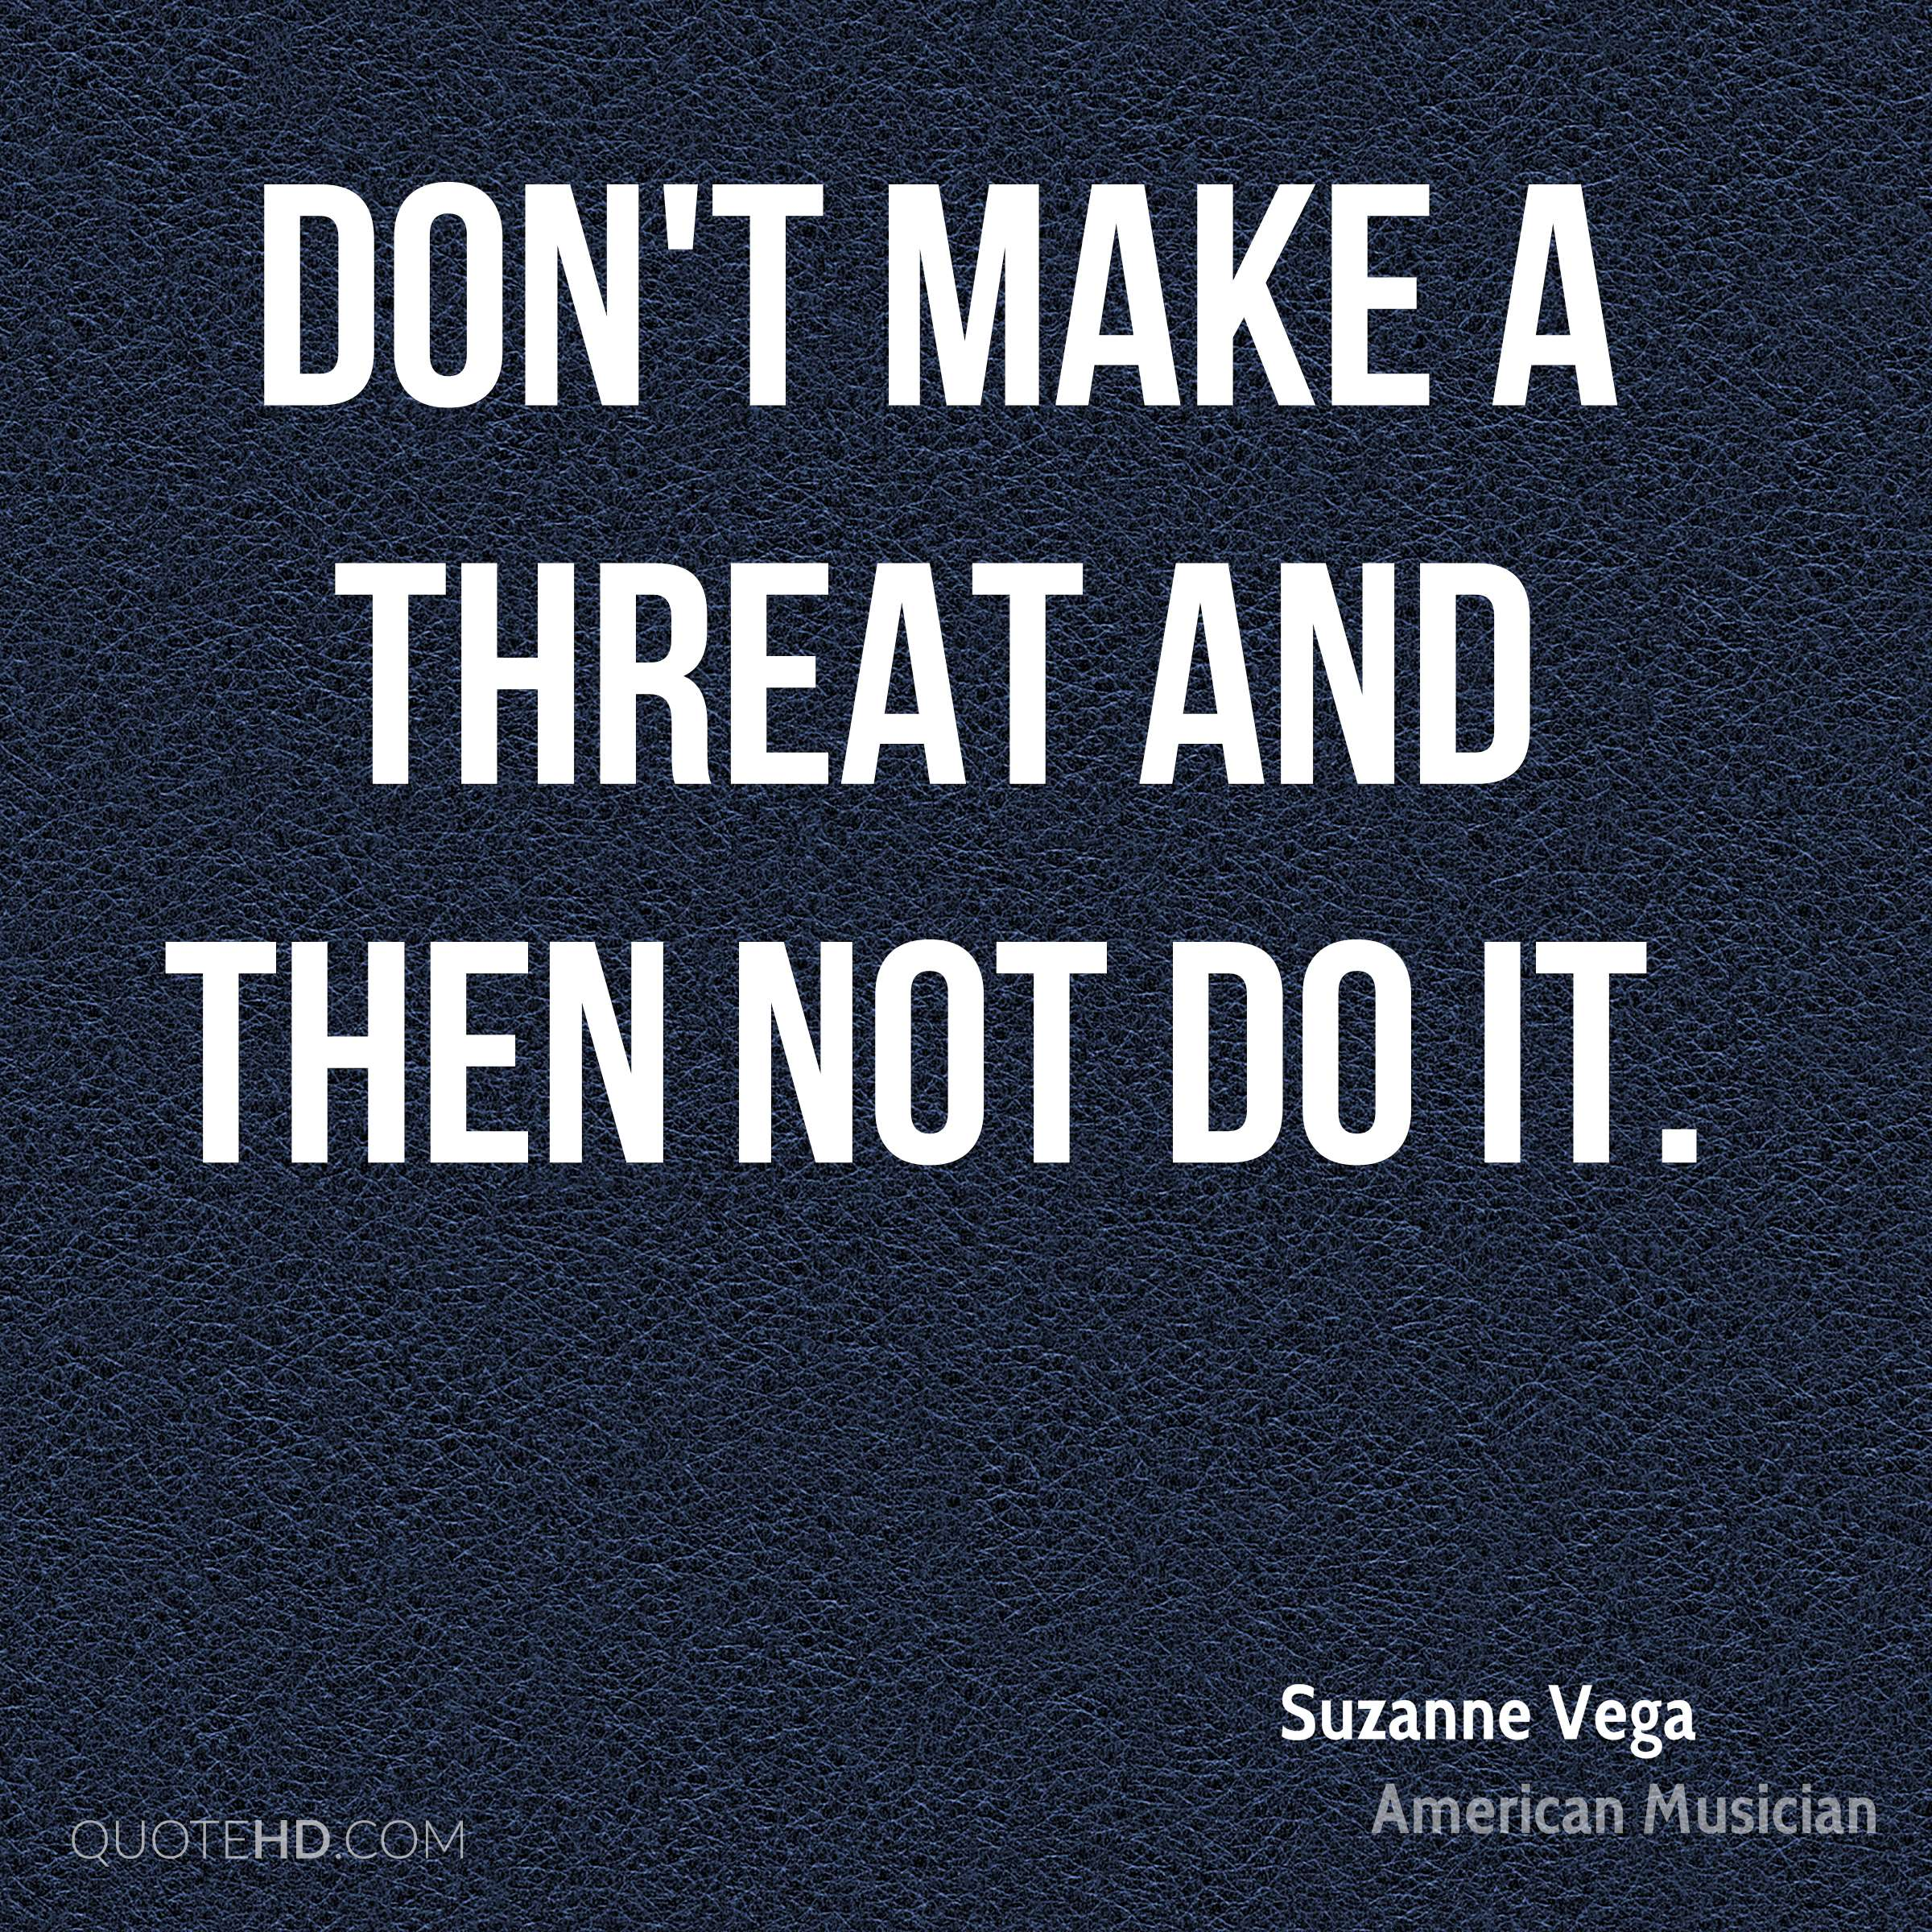 Don't make a threat and then not do it.